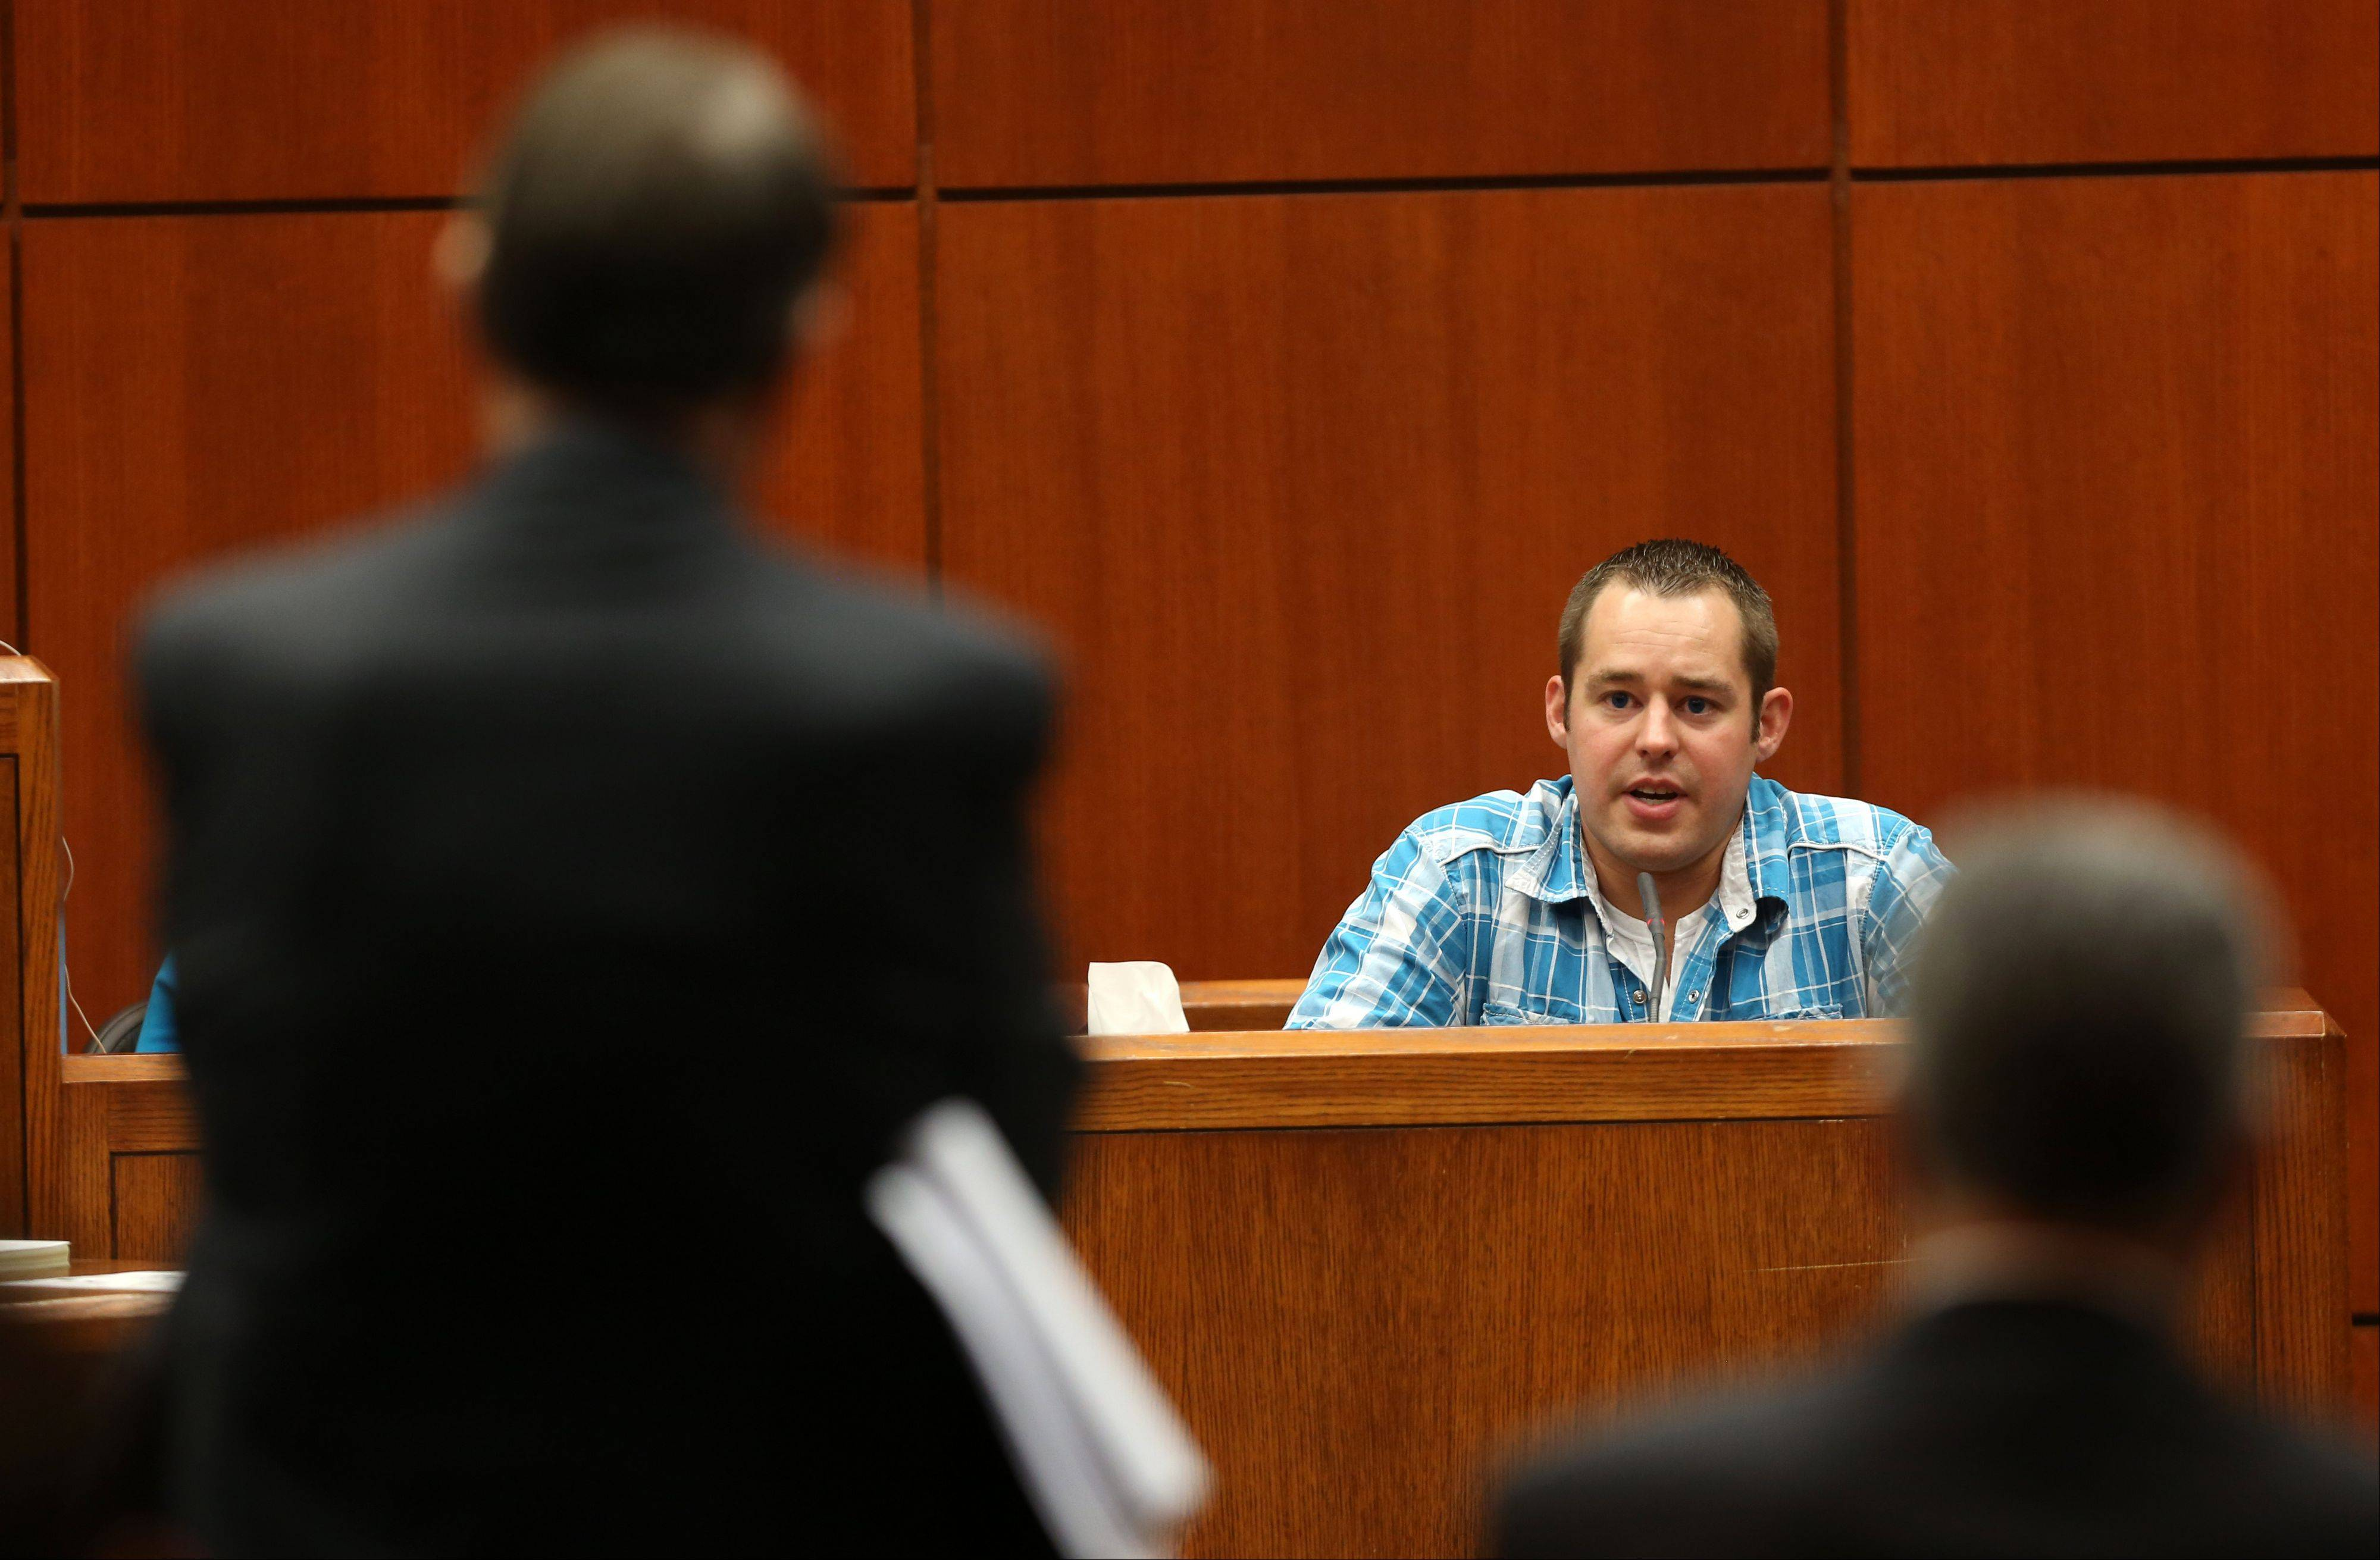 Derek Janssen, former mechanic at Bill Jacobs BMW in Naperville, testifies Thursday at the Johnny Borizov trial in Wheaton.